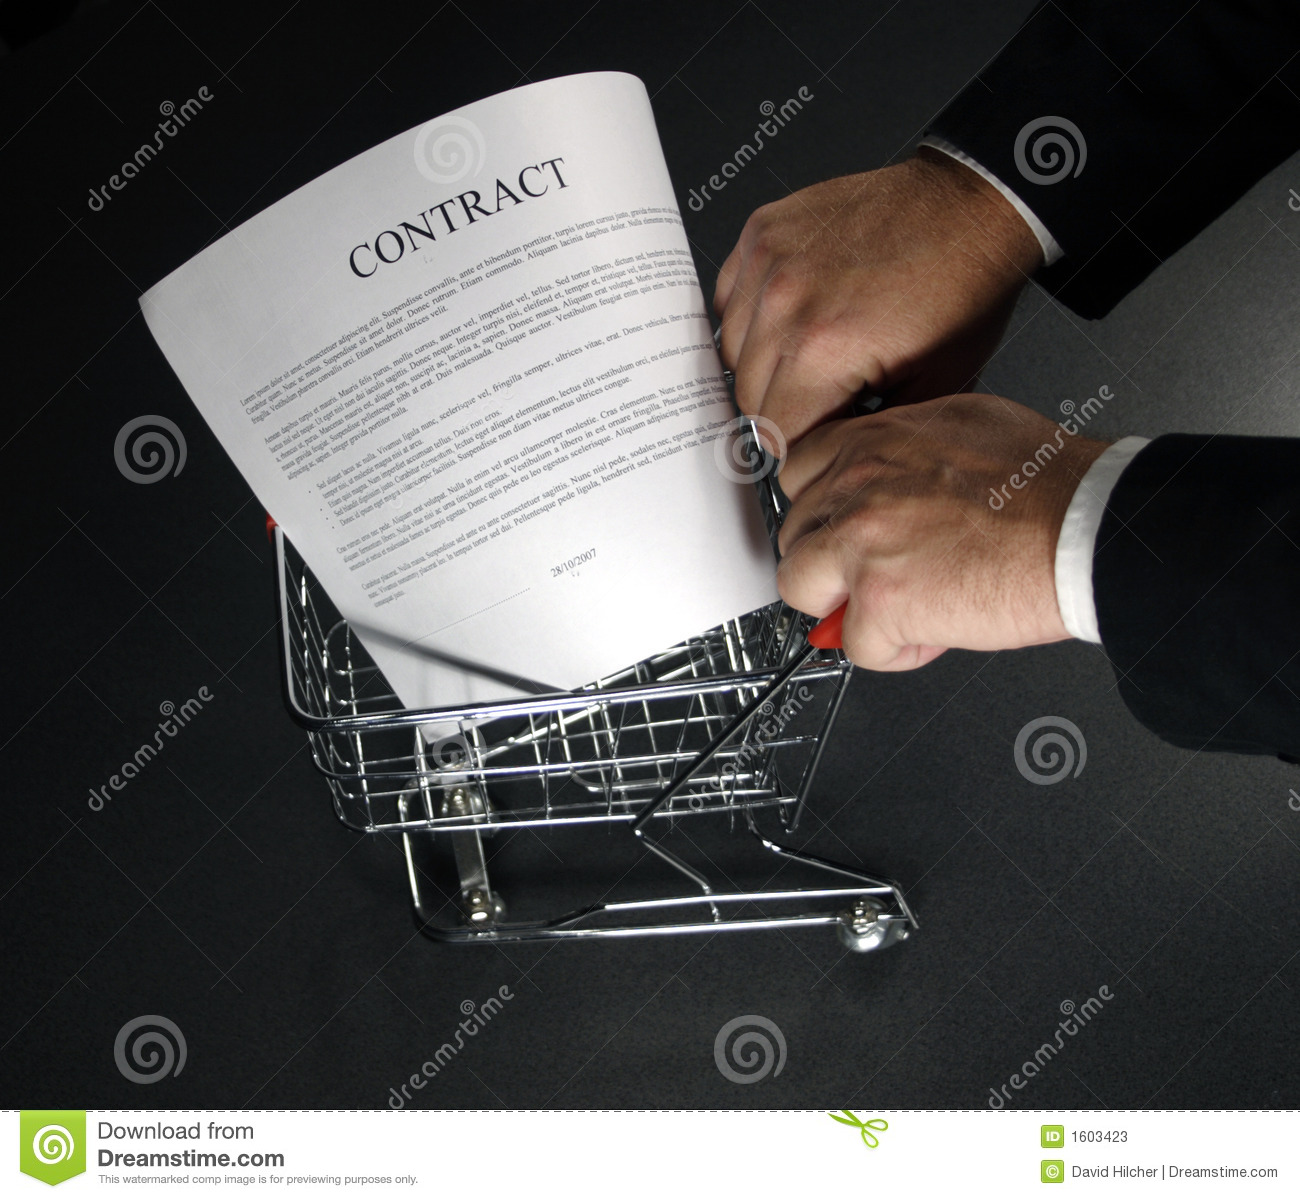 Shopping a contract around